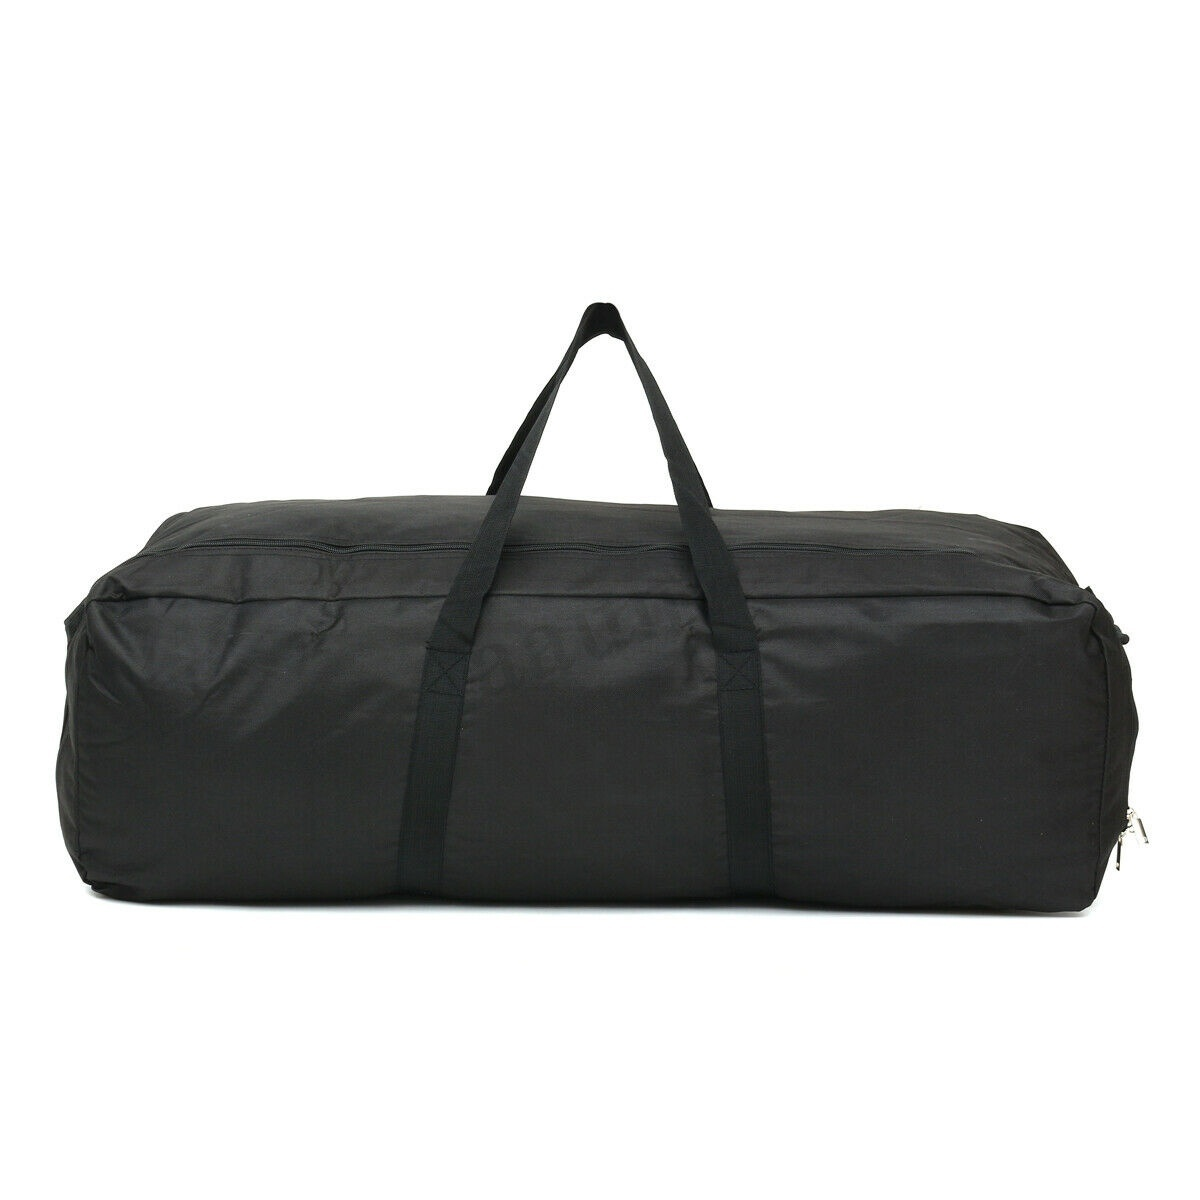 150L 100L 55L Gym Bag Outdoor Men's Black Large Capacity Duffle Travel Gym Weekend Overnight Bag Waterproof Sport Bags